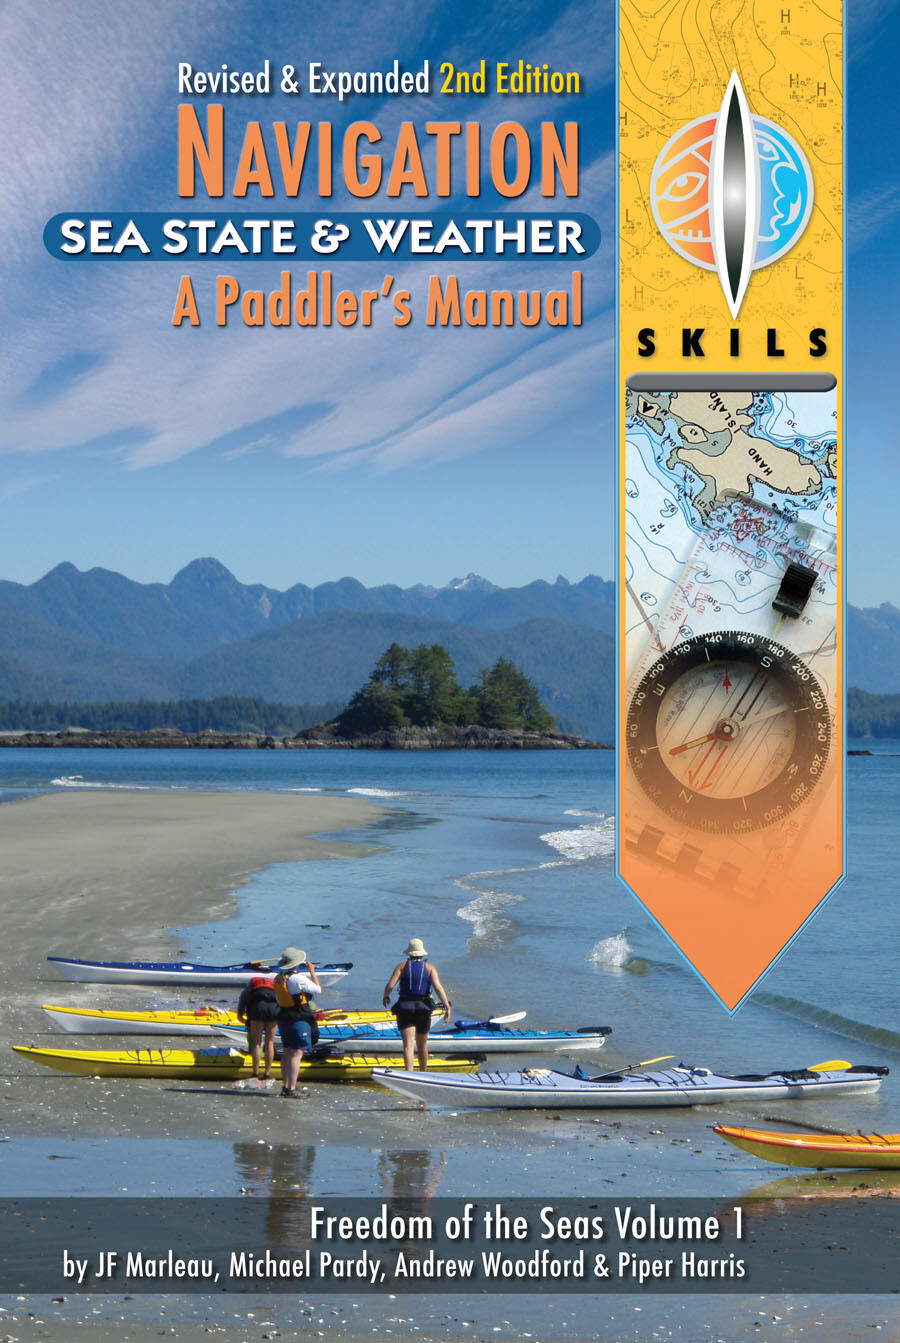 Navigation, Sea State, Weather -A Paddler's Manual.  Freedom of the Seas Volume 1. 2020. Second Edition (Paperback). Available January 8, 2021.